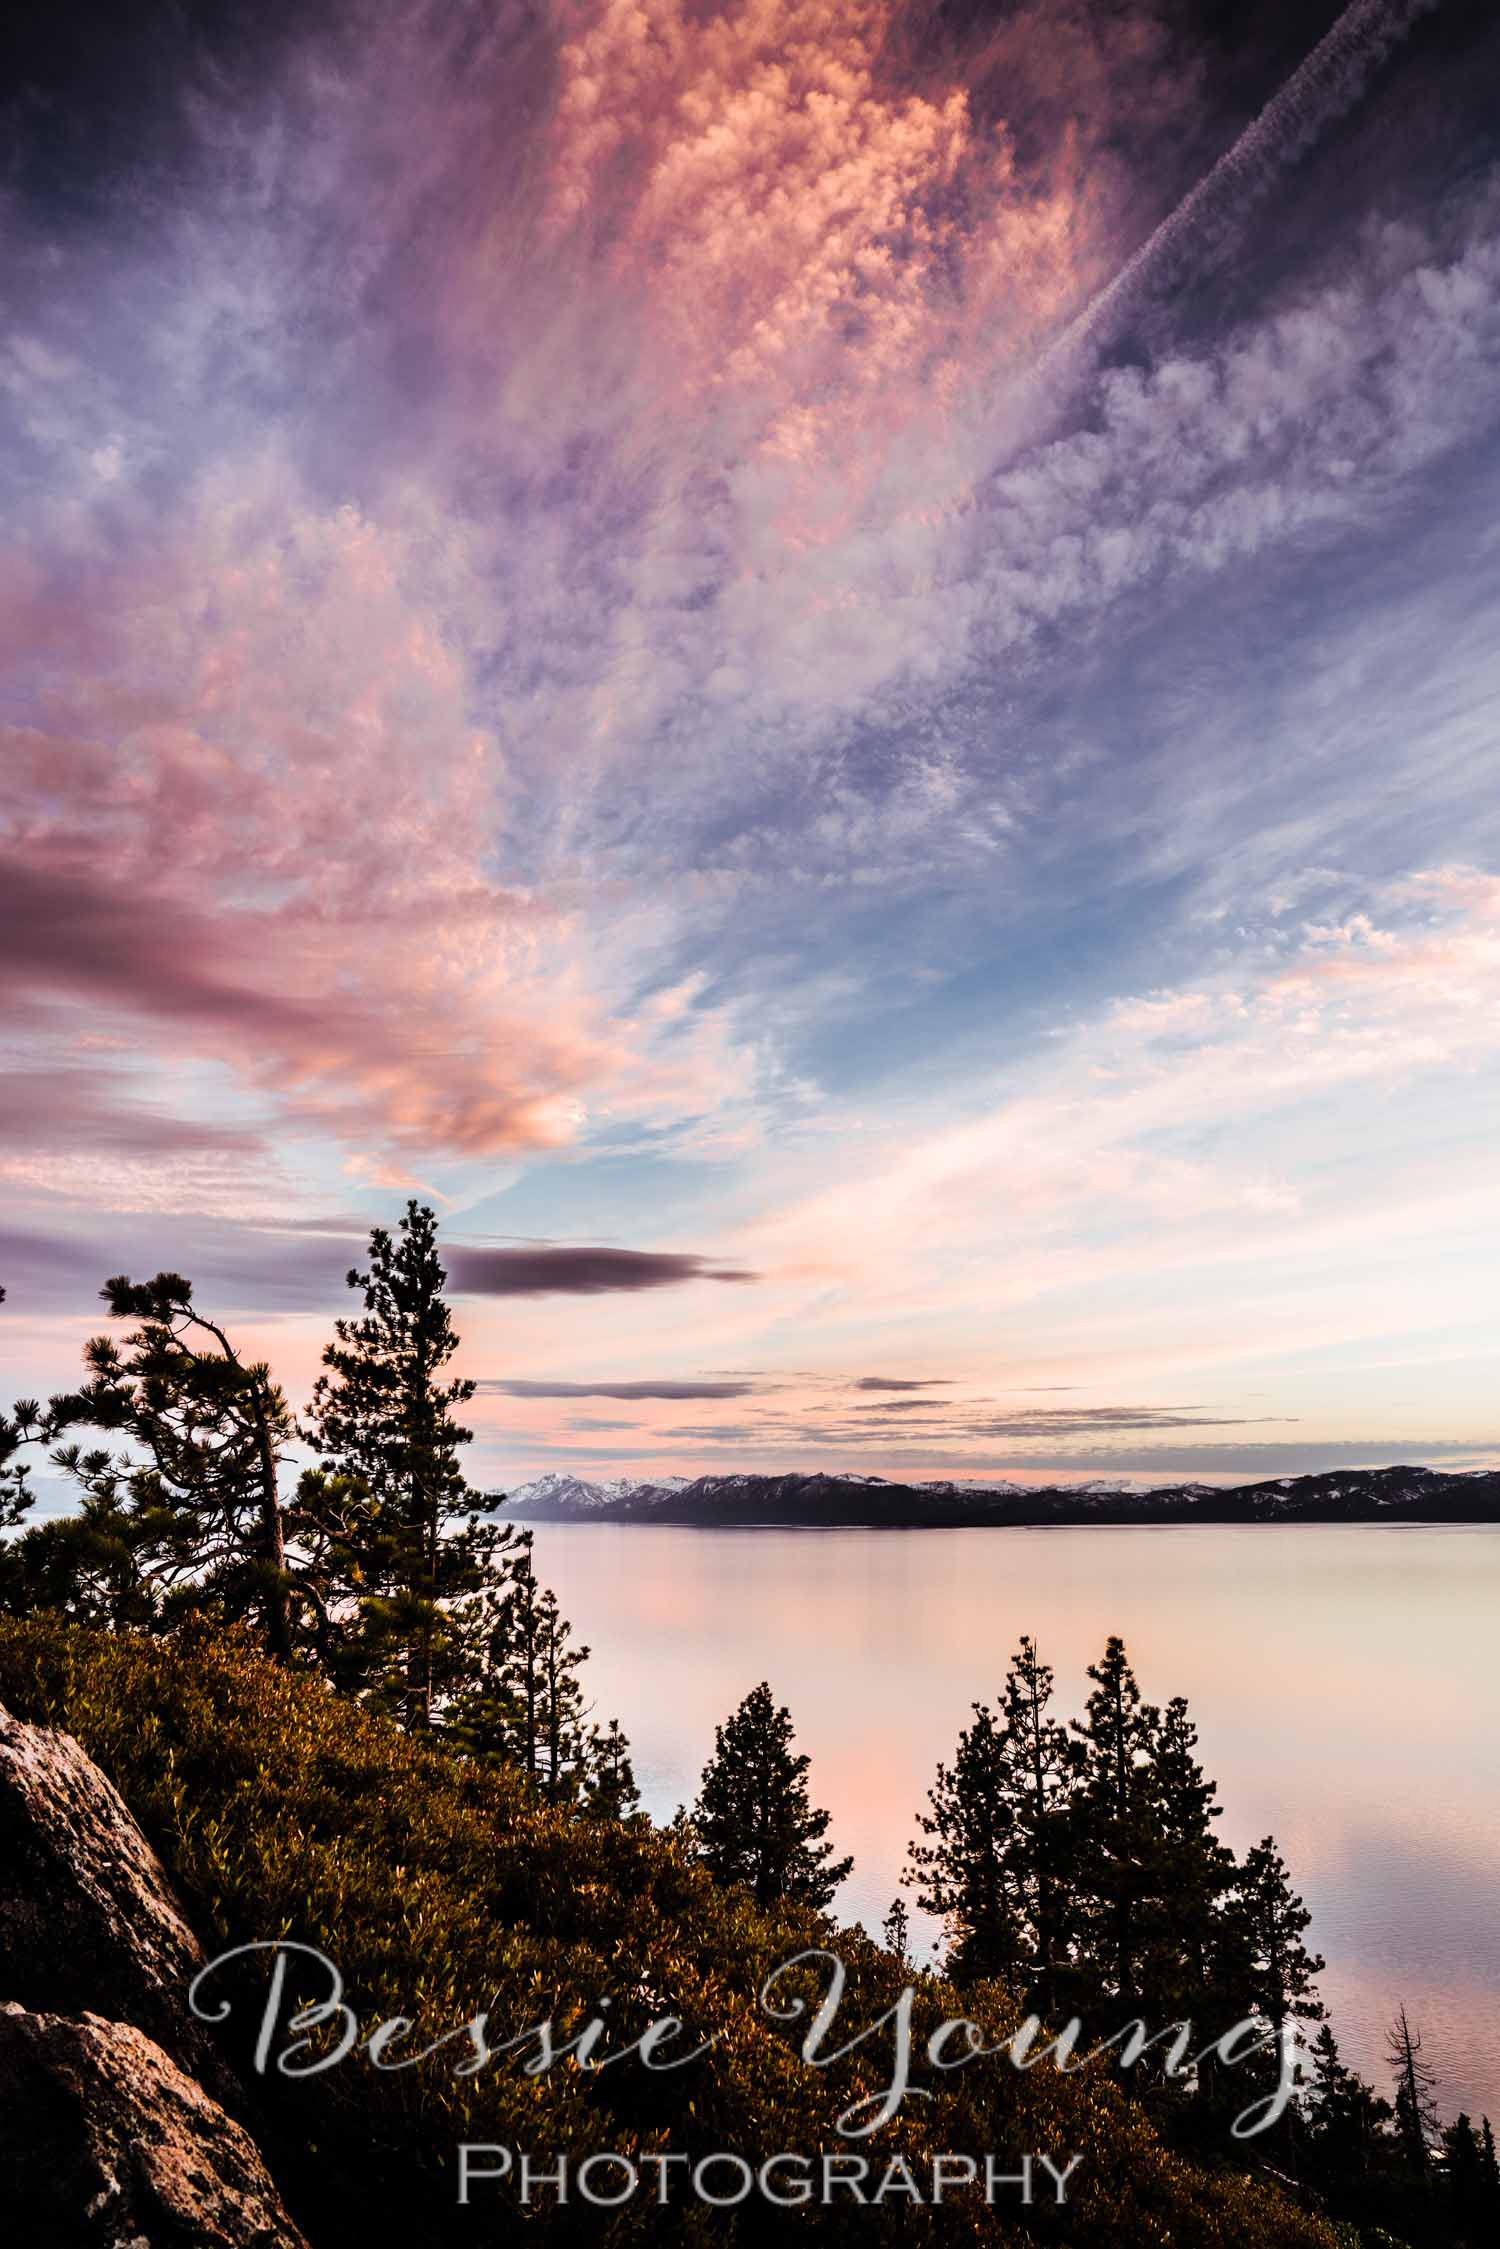 Lake Tahoe Photograph by Bessie Young Photography 2018.jpg